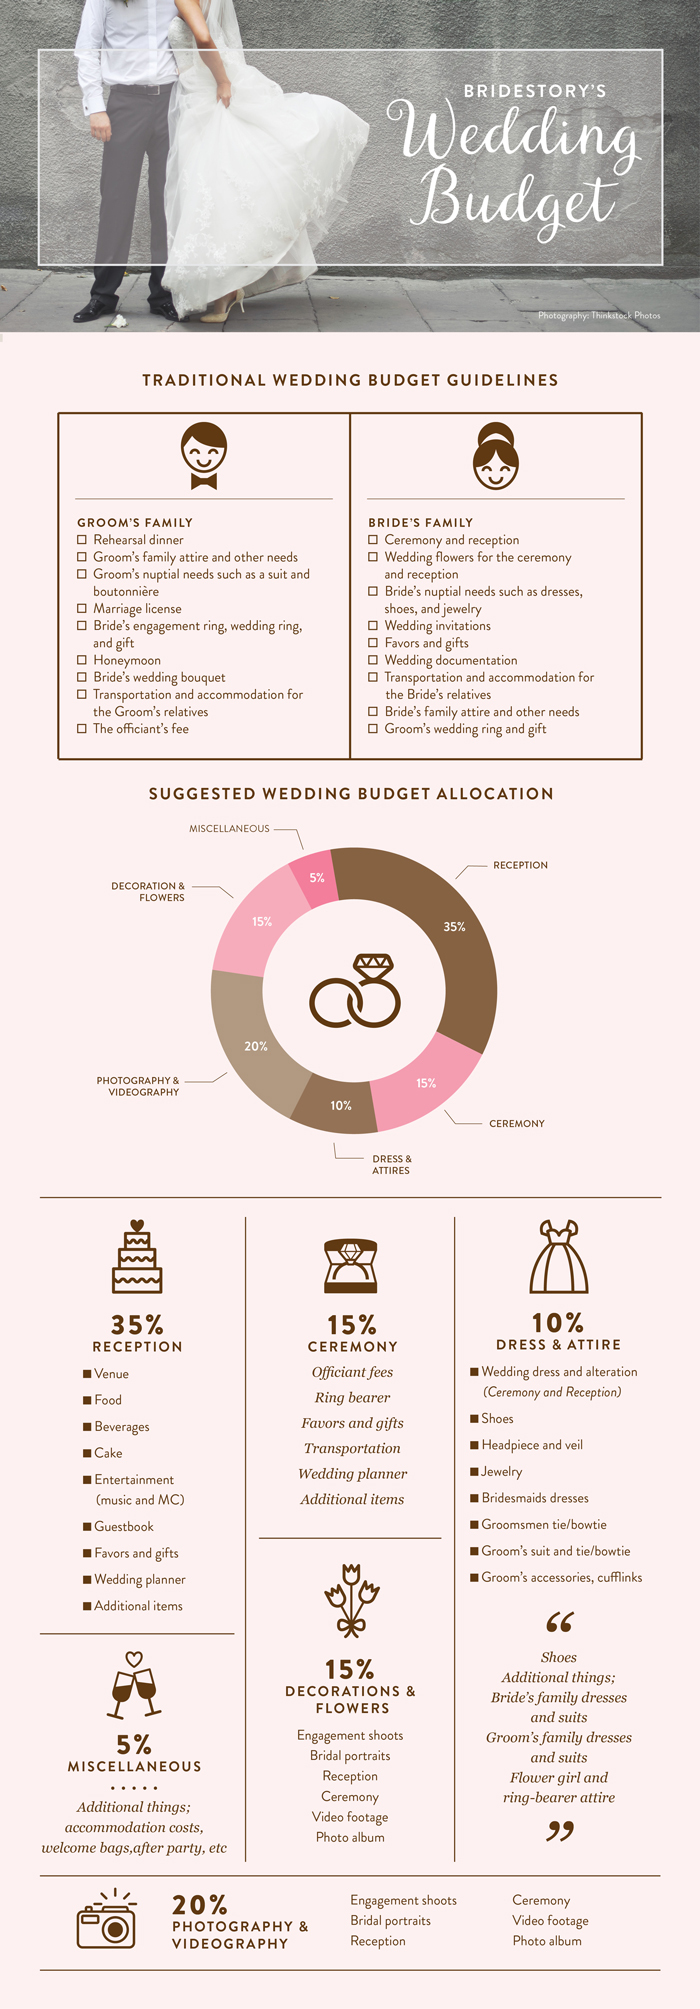 The How, What and Who of Wedding Budget Plan Image 2